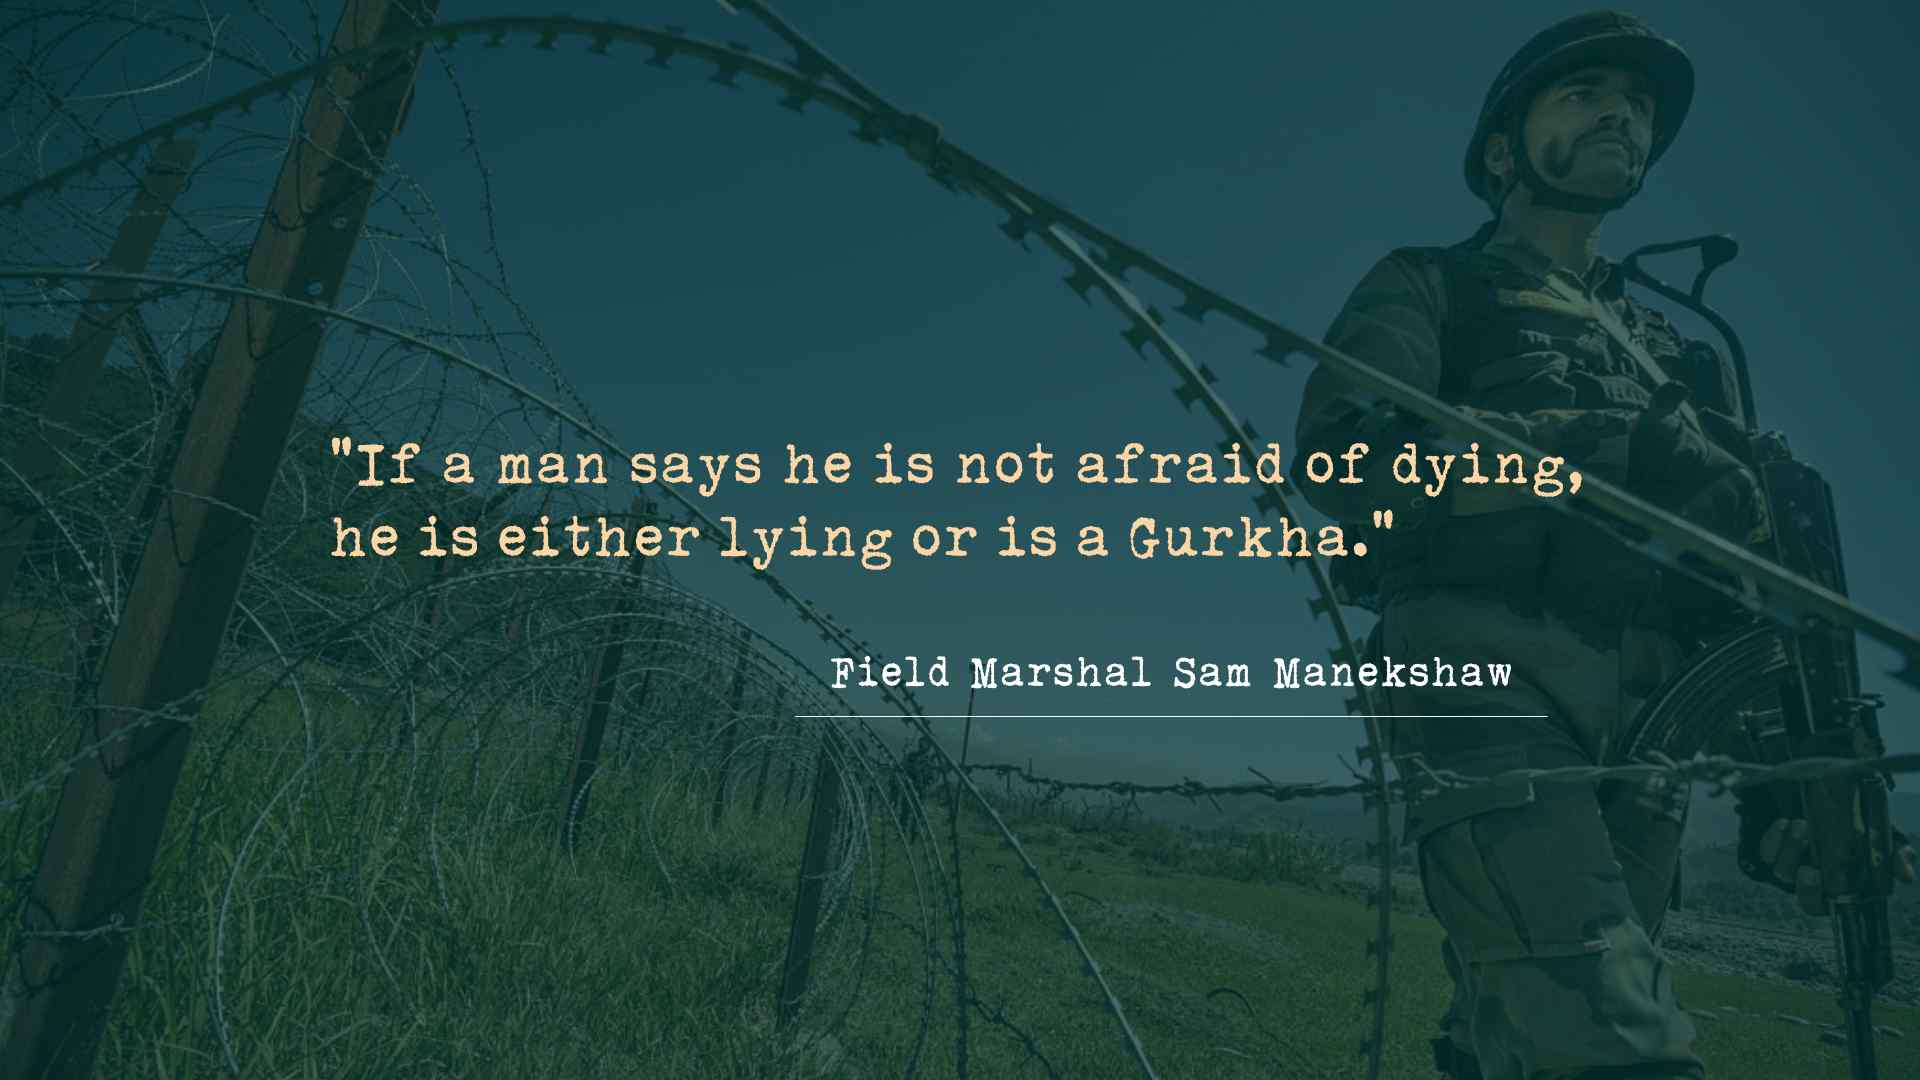 Indian Army Quotes for girlfriends